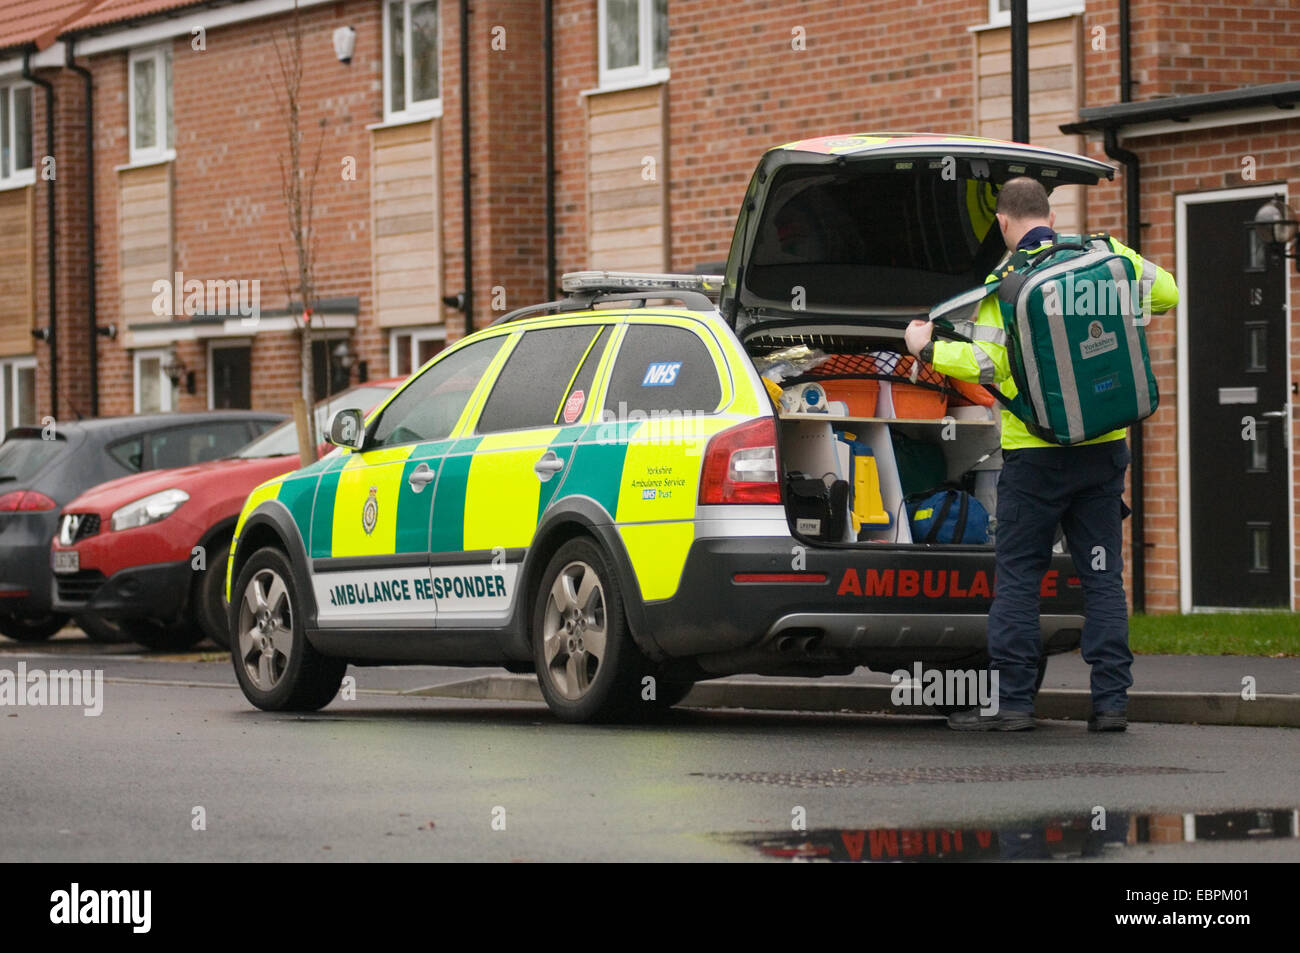 paramedic emergency response responder ambulance medic medical car cars quick early fast 999 equipment kit first - Stock Image